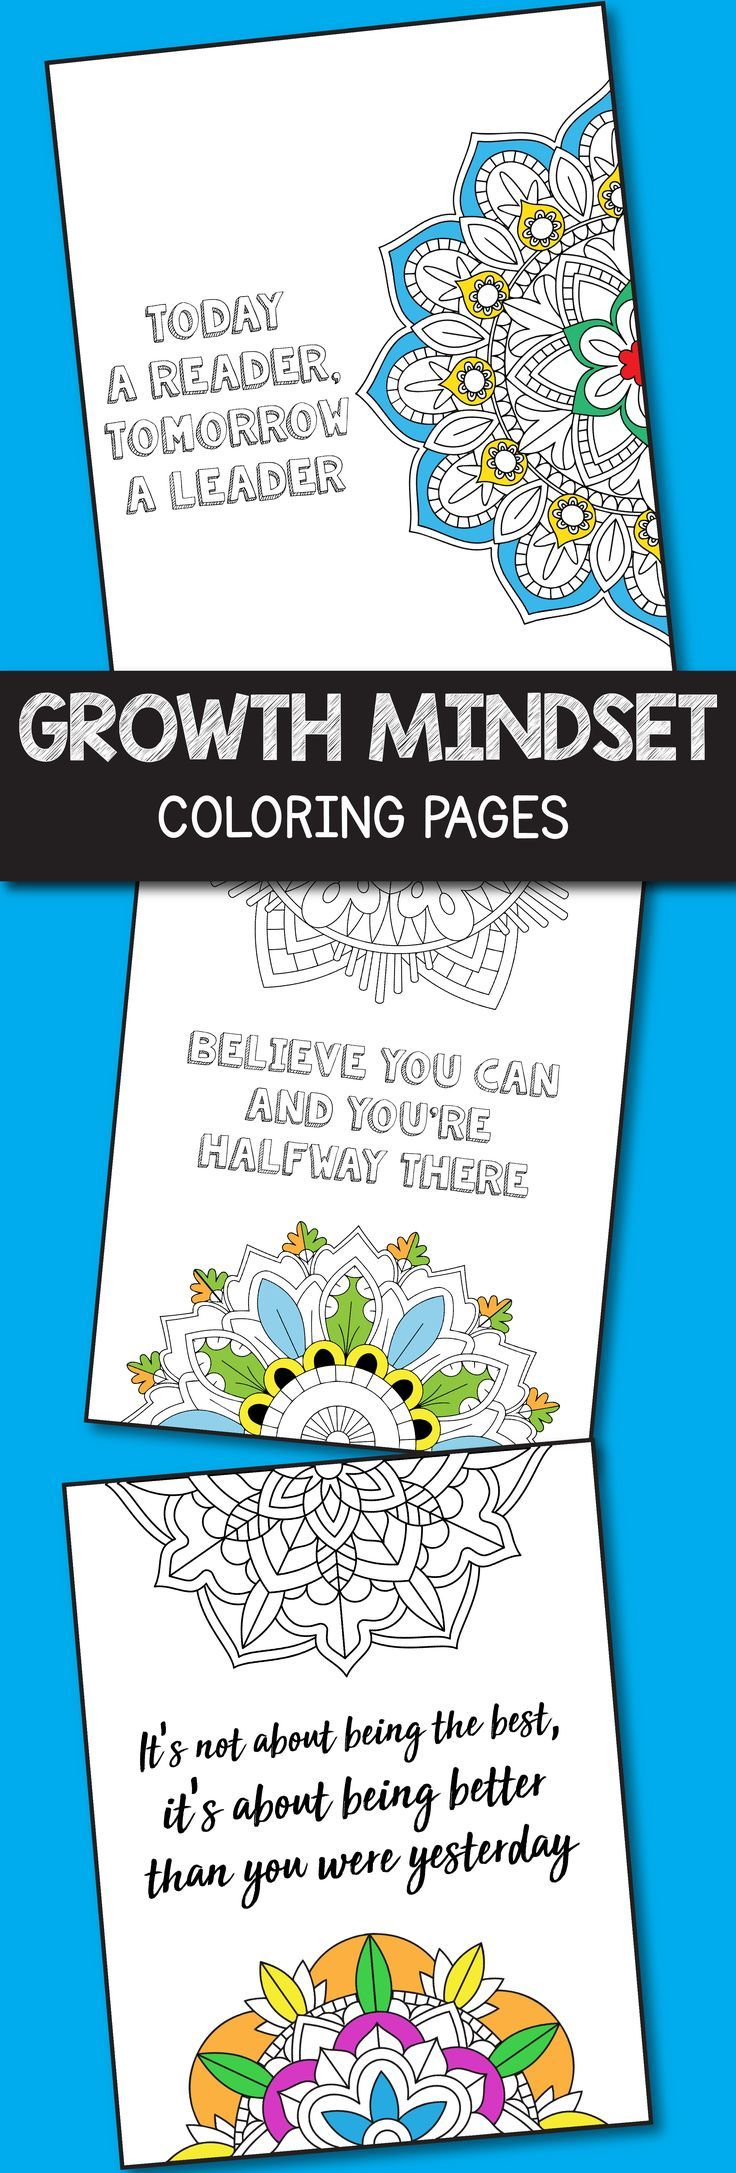 Make your growth mindset lessons more interesting with these growth mindset motivational coloring pages. Perfect for kids of all ages including primary and middle school learners, these will make introducing a growth mindset much easier. These printable coloring pages can be also used as posters for display.